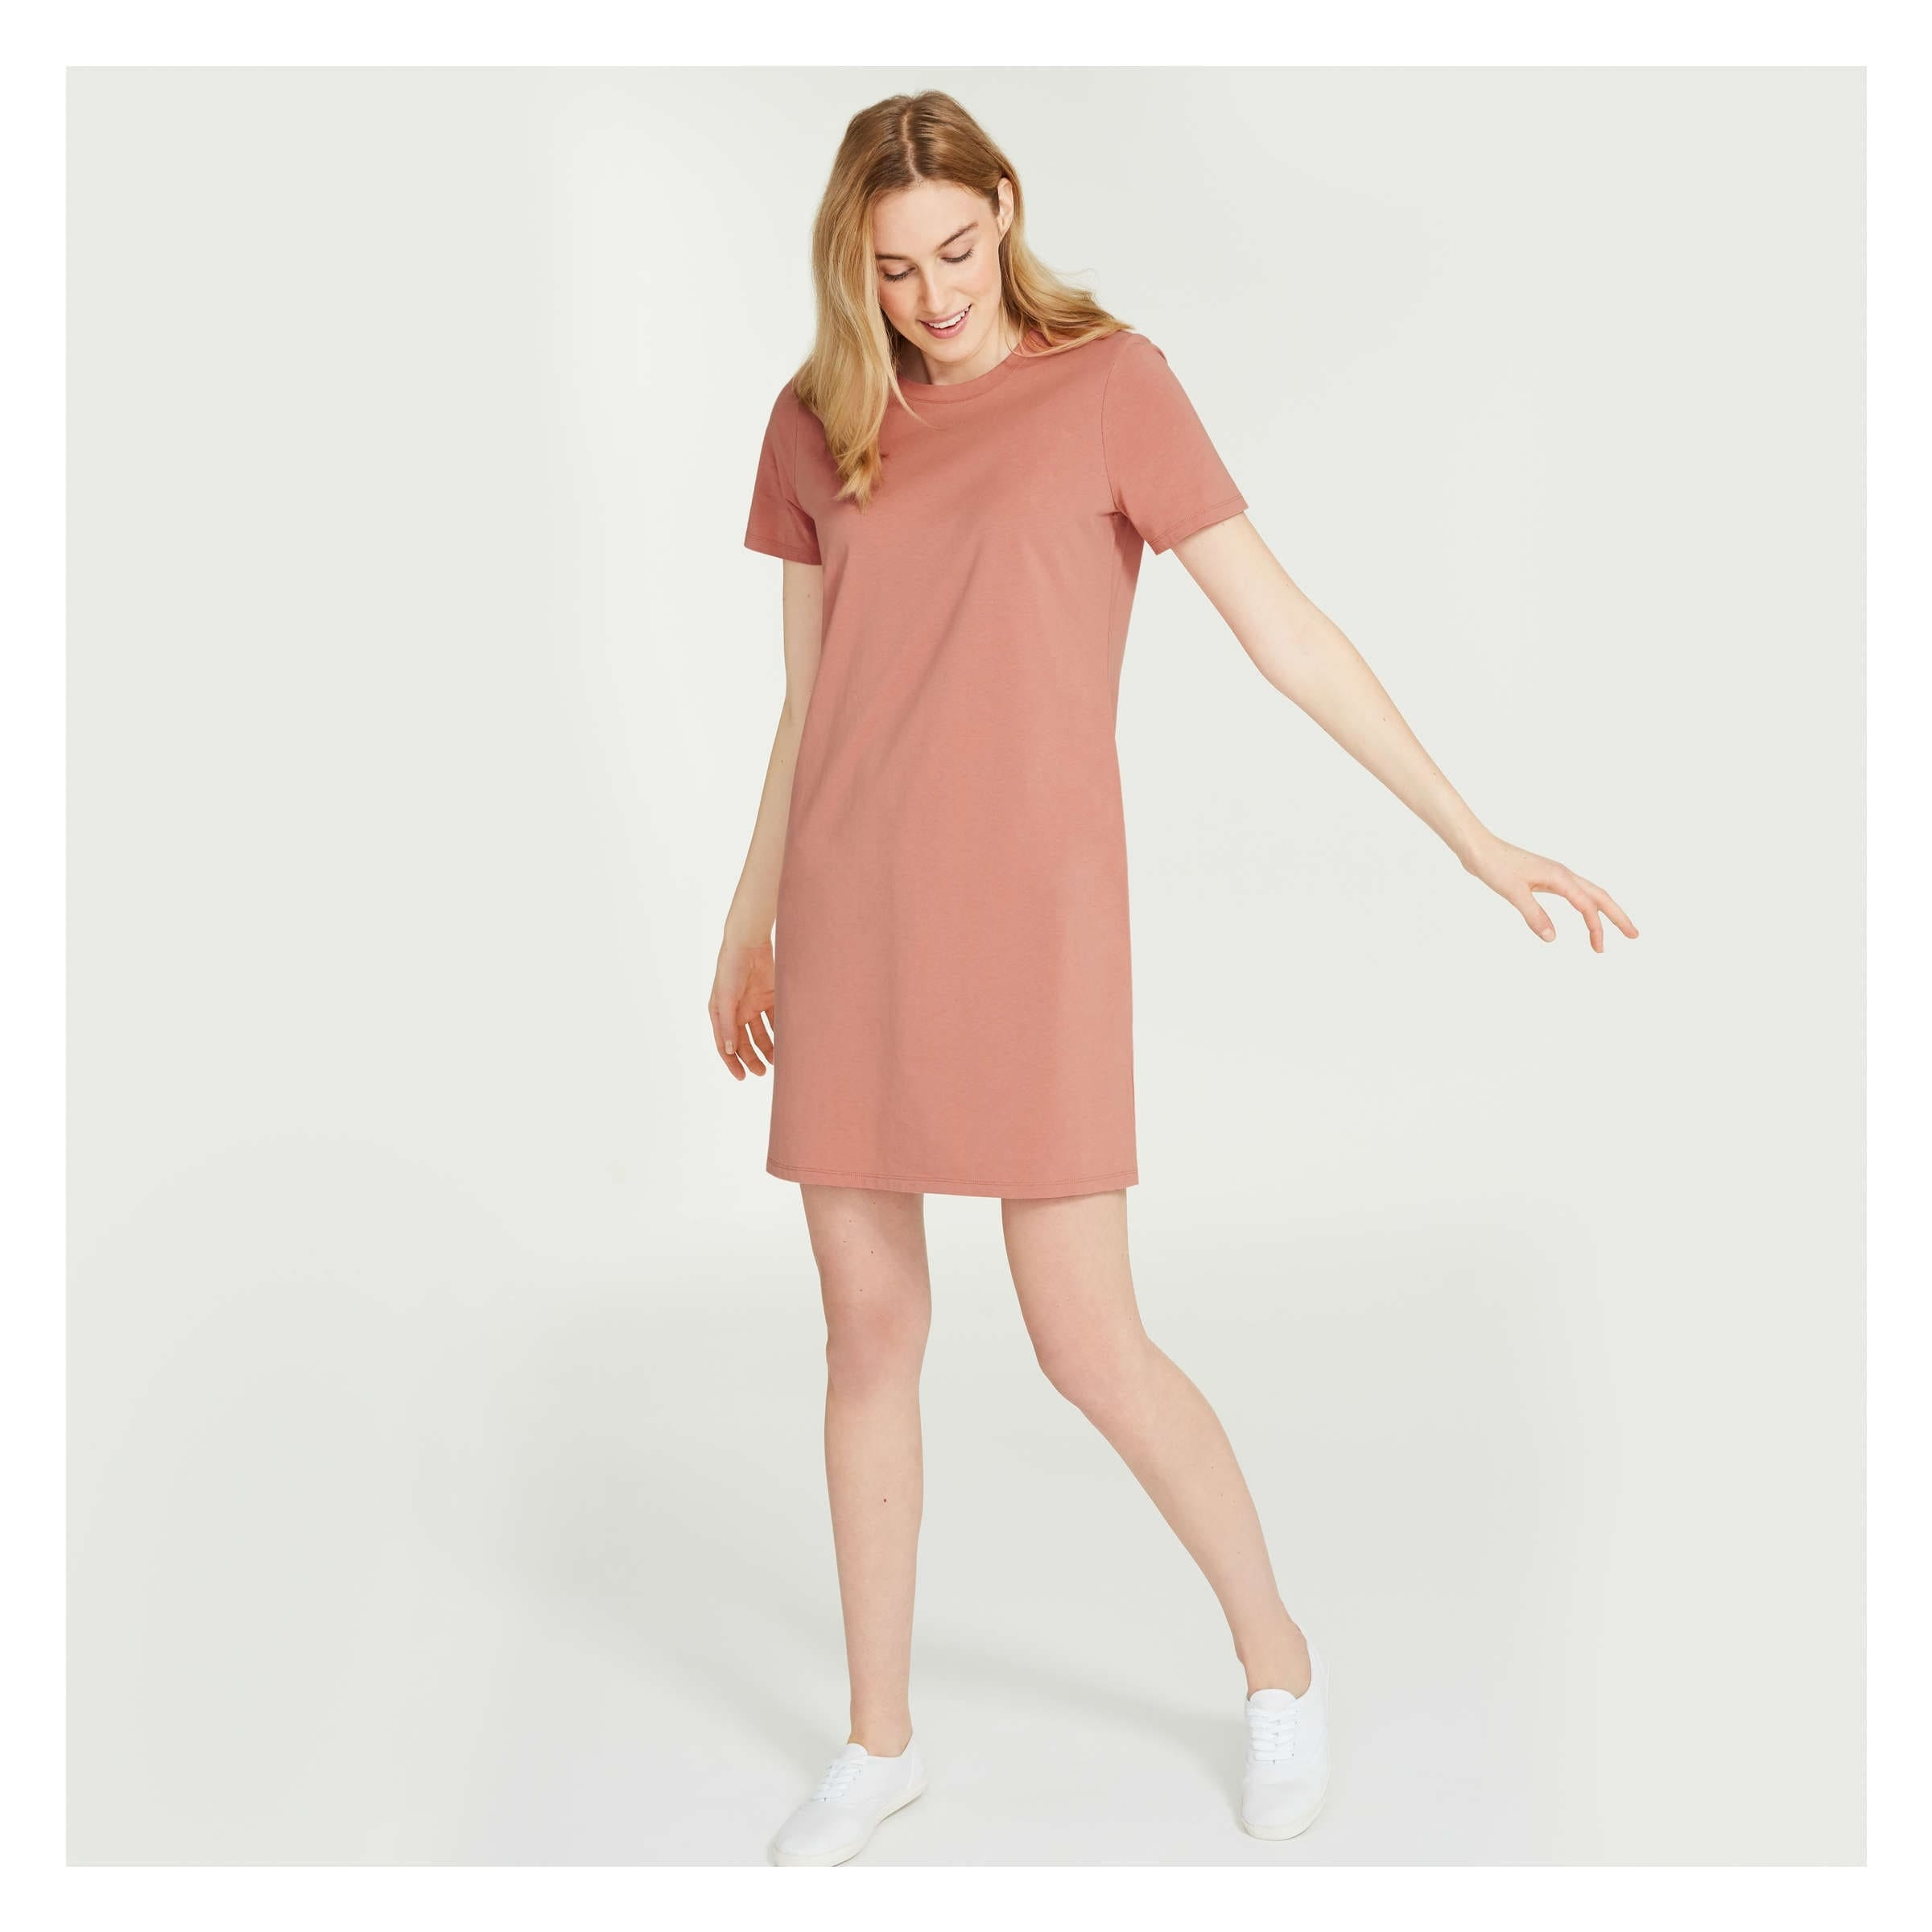 A person wearing the t-shirt dress